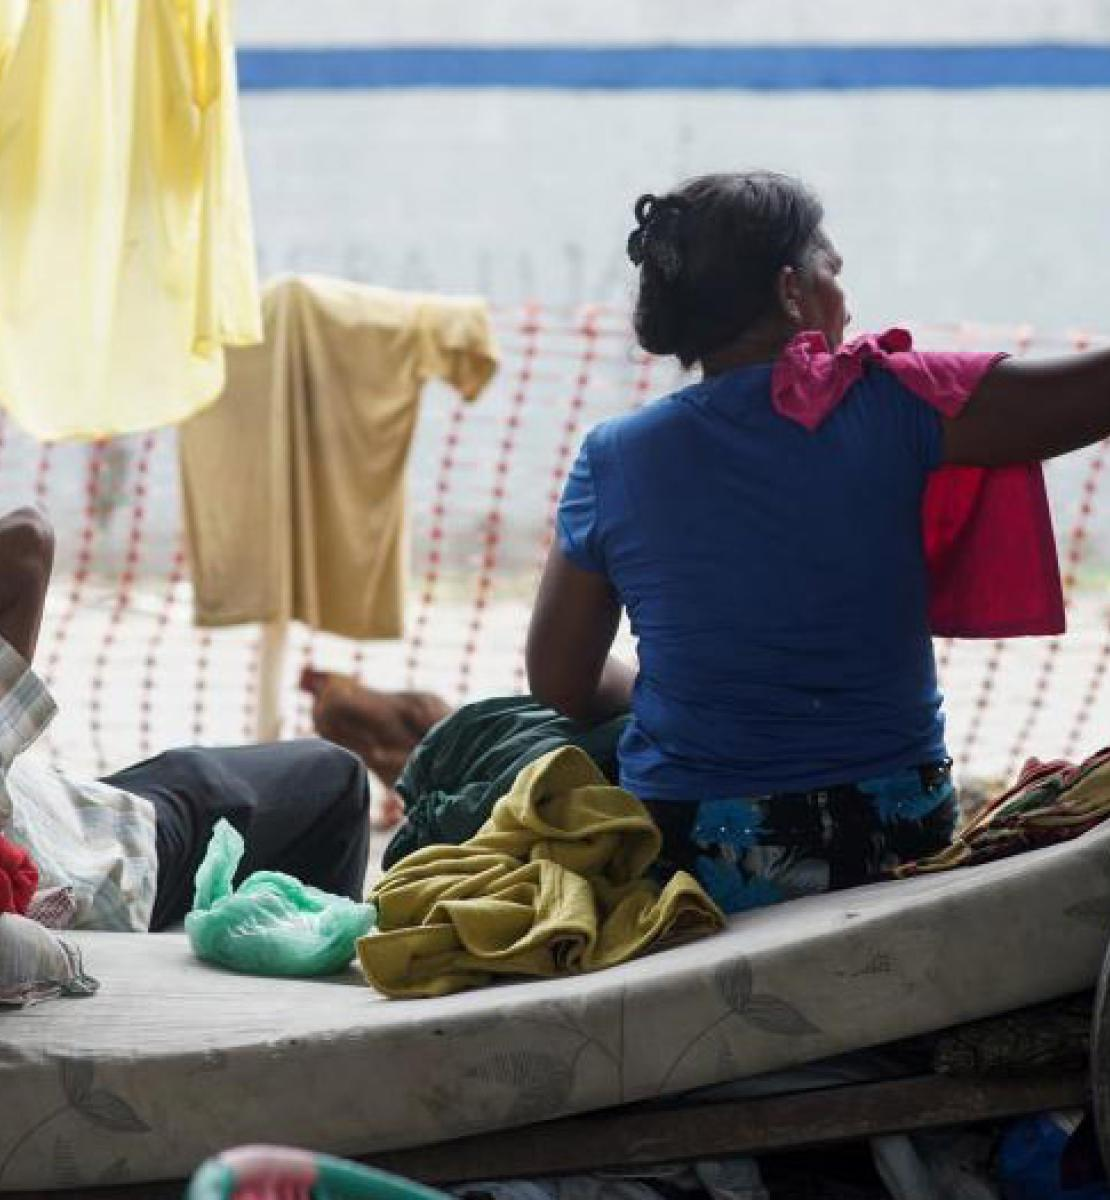 Rescue boat with two survivors of the storms that hit Honduras.